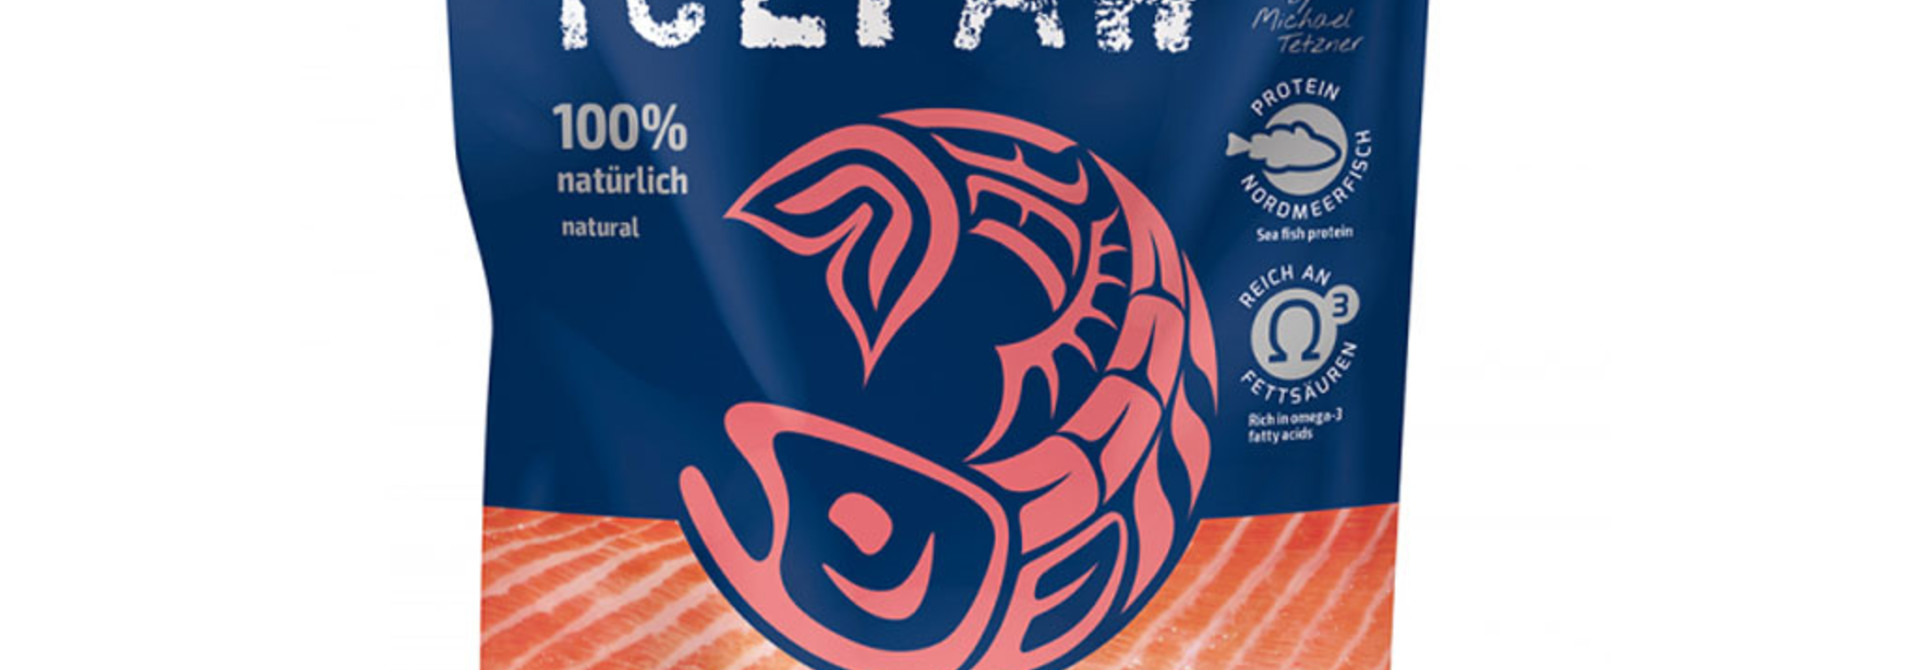 IcePaw Salmon Pure for Soup